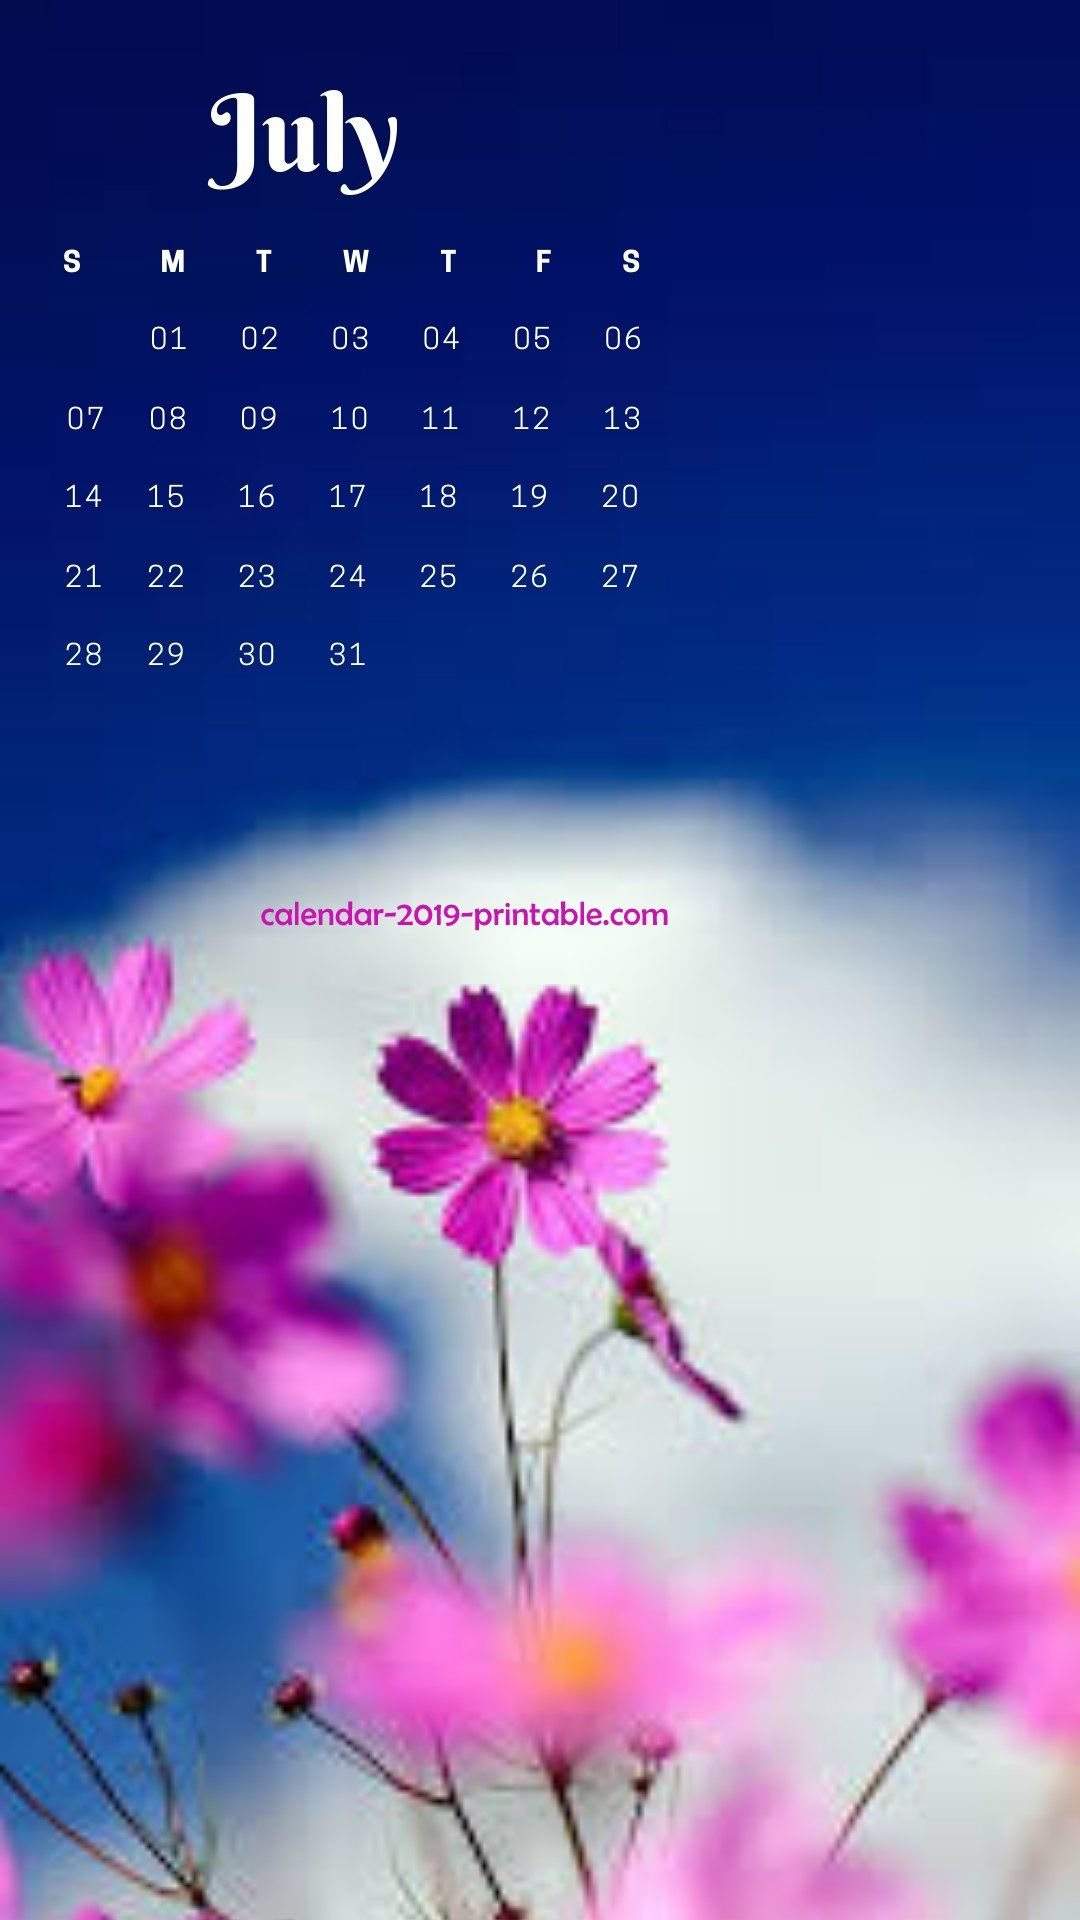 july 2019 iphone flower wallpaper 2019 Calendars in 2019 1080x1920